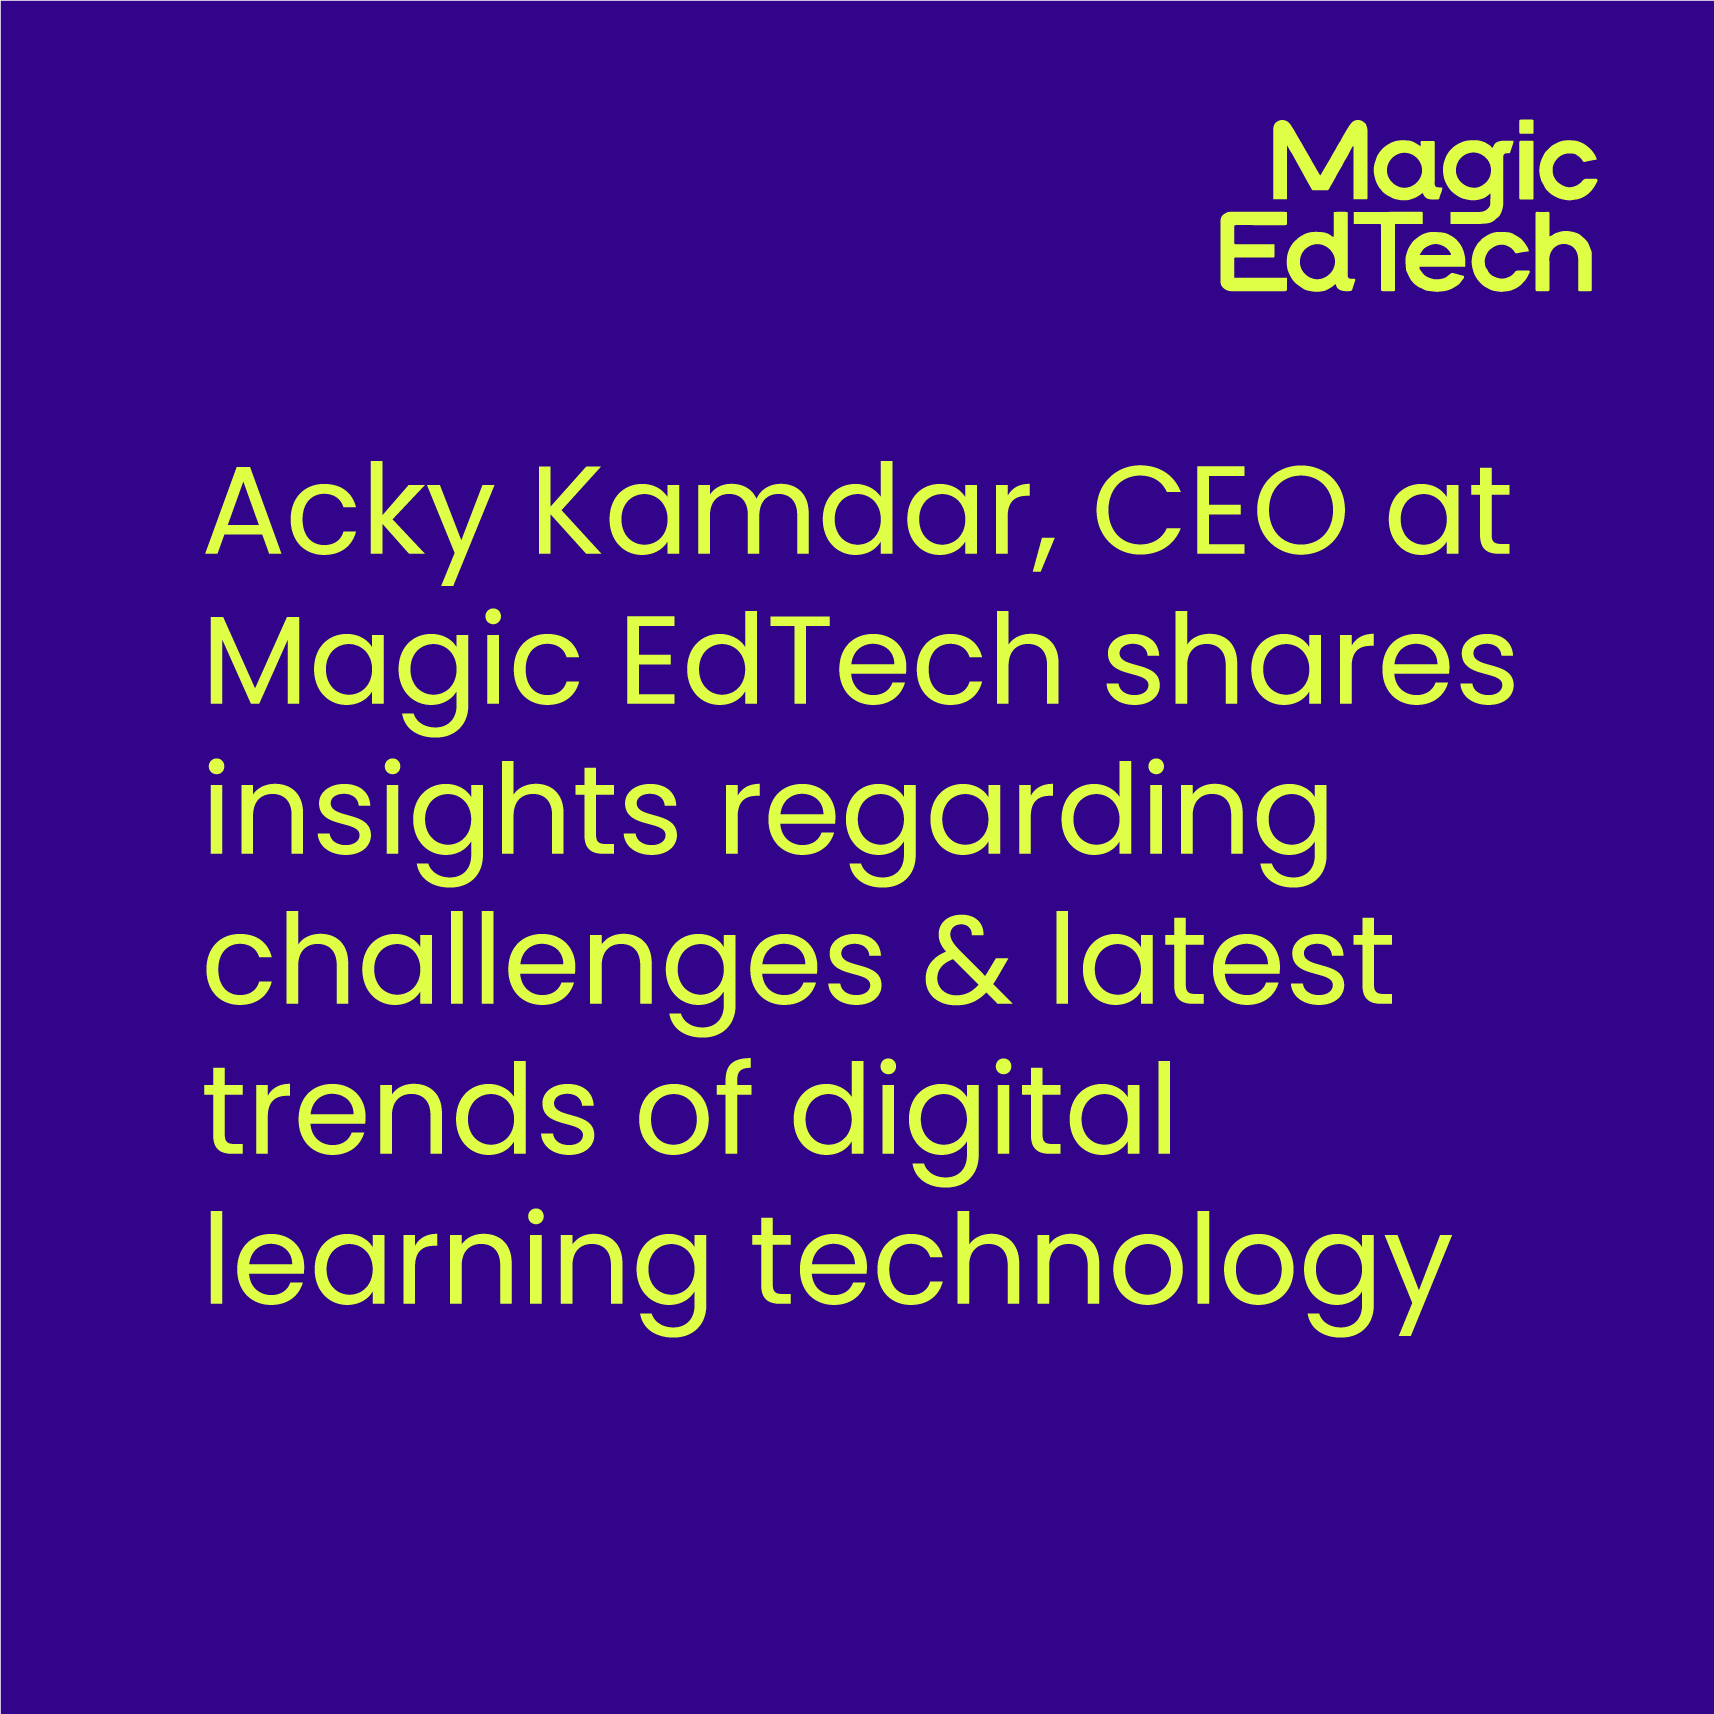 CEO at Magic EdTech shares latest digital learning trends & challenges